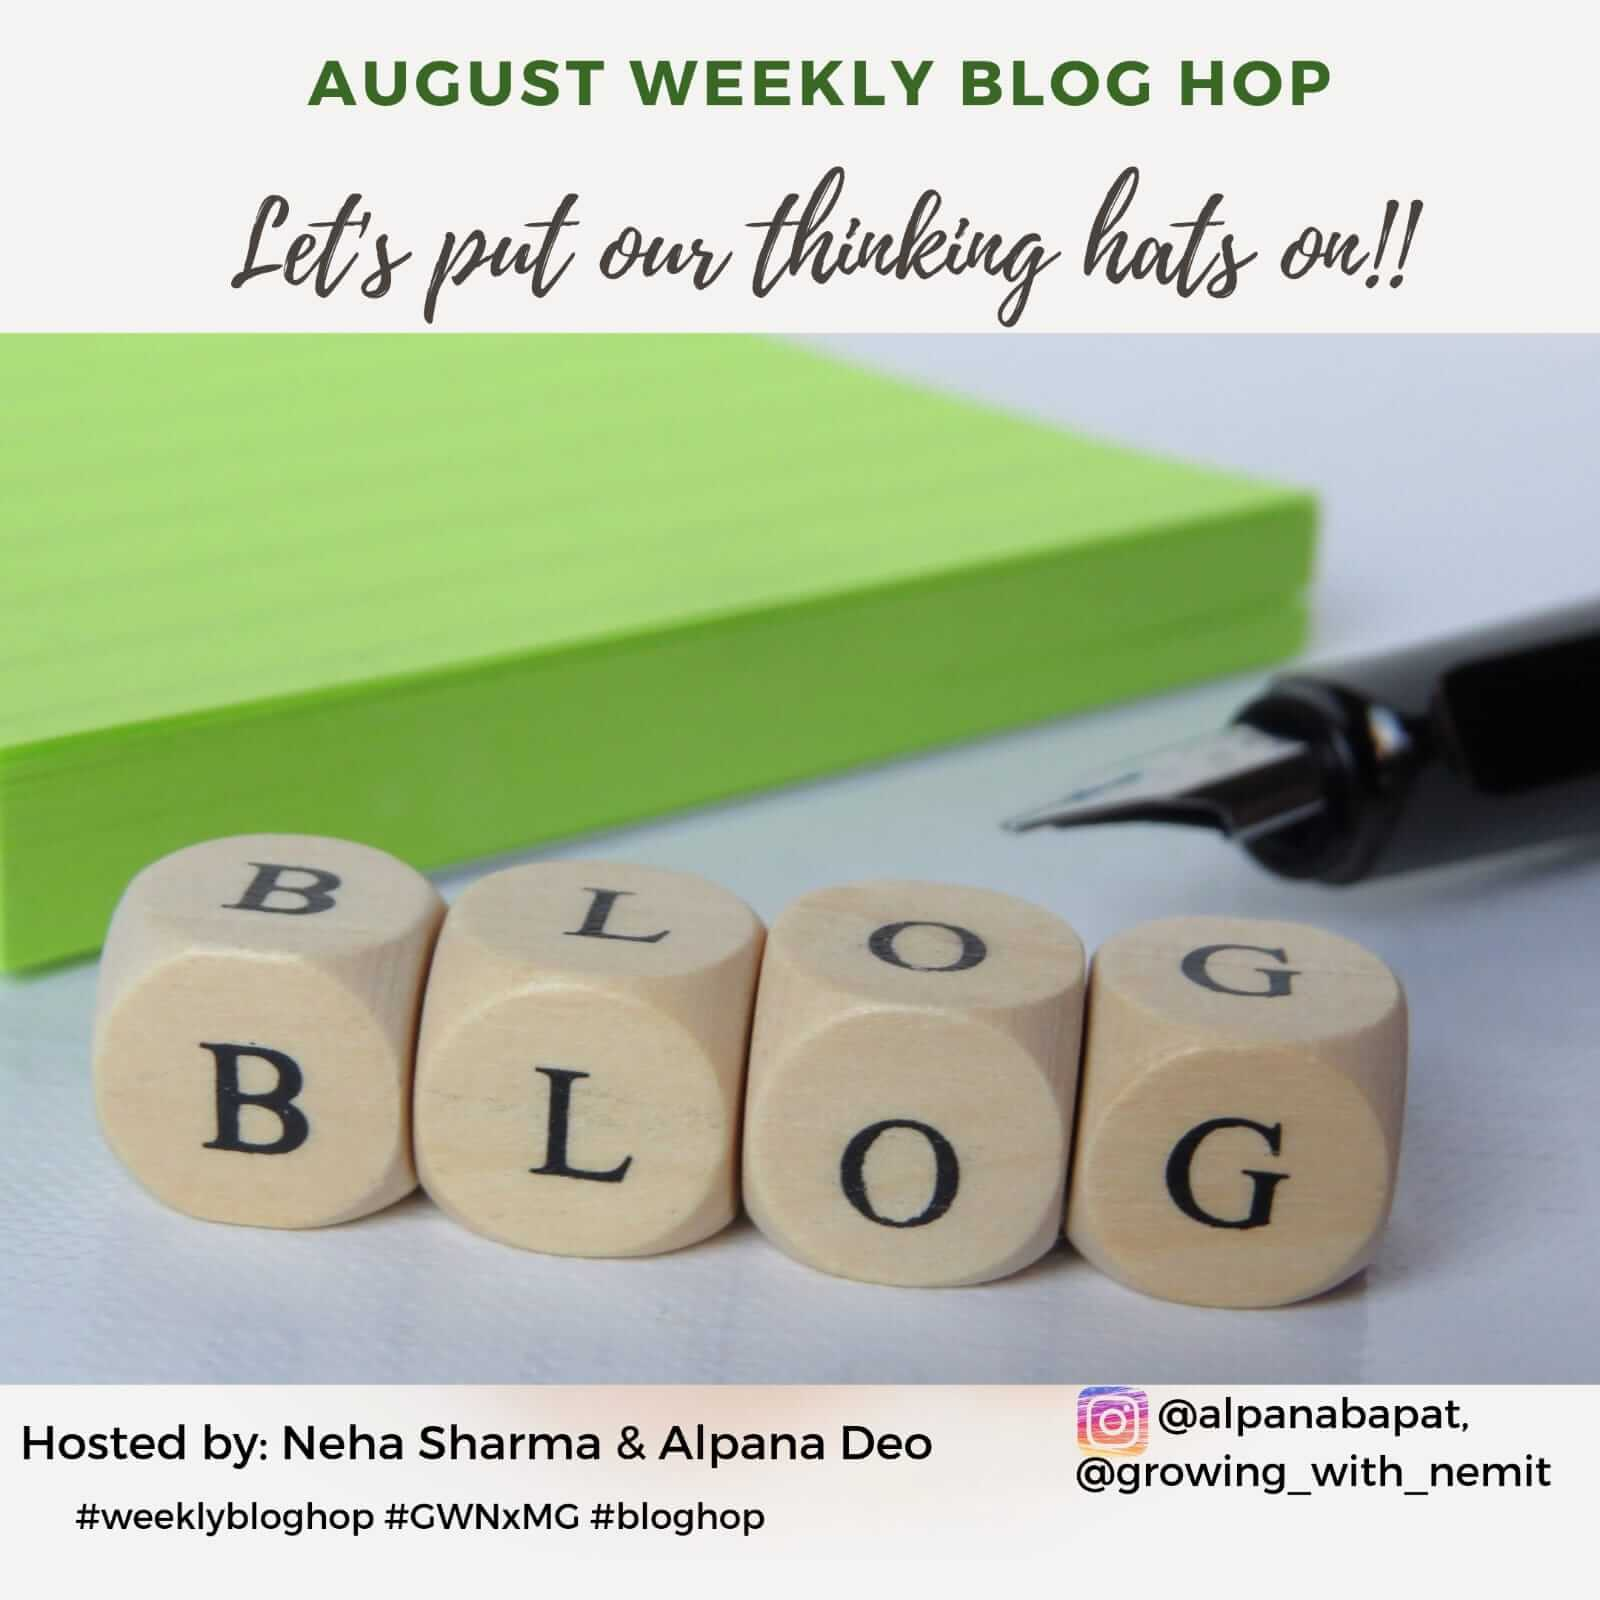 #WeeklyBlogHop #BlogHop